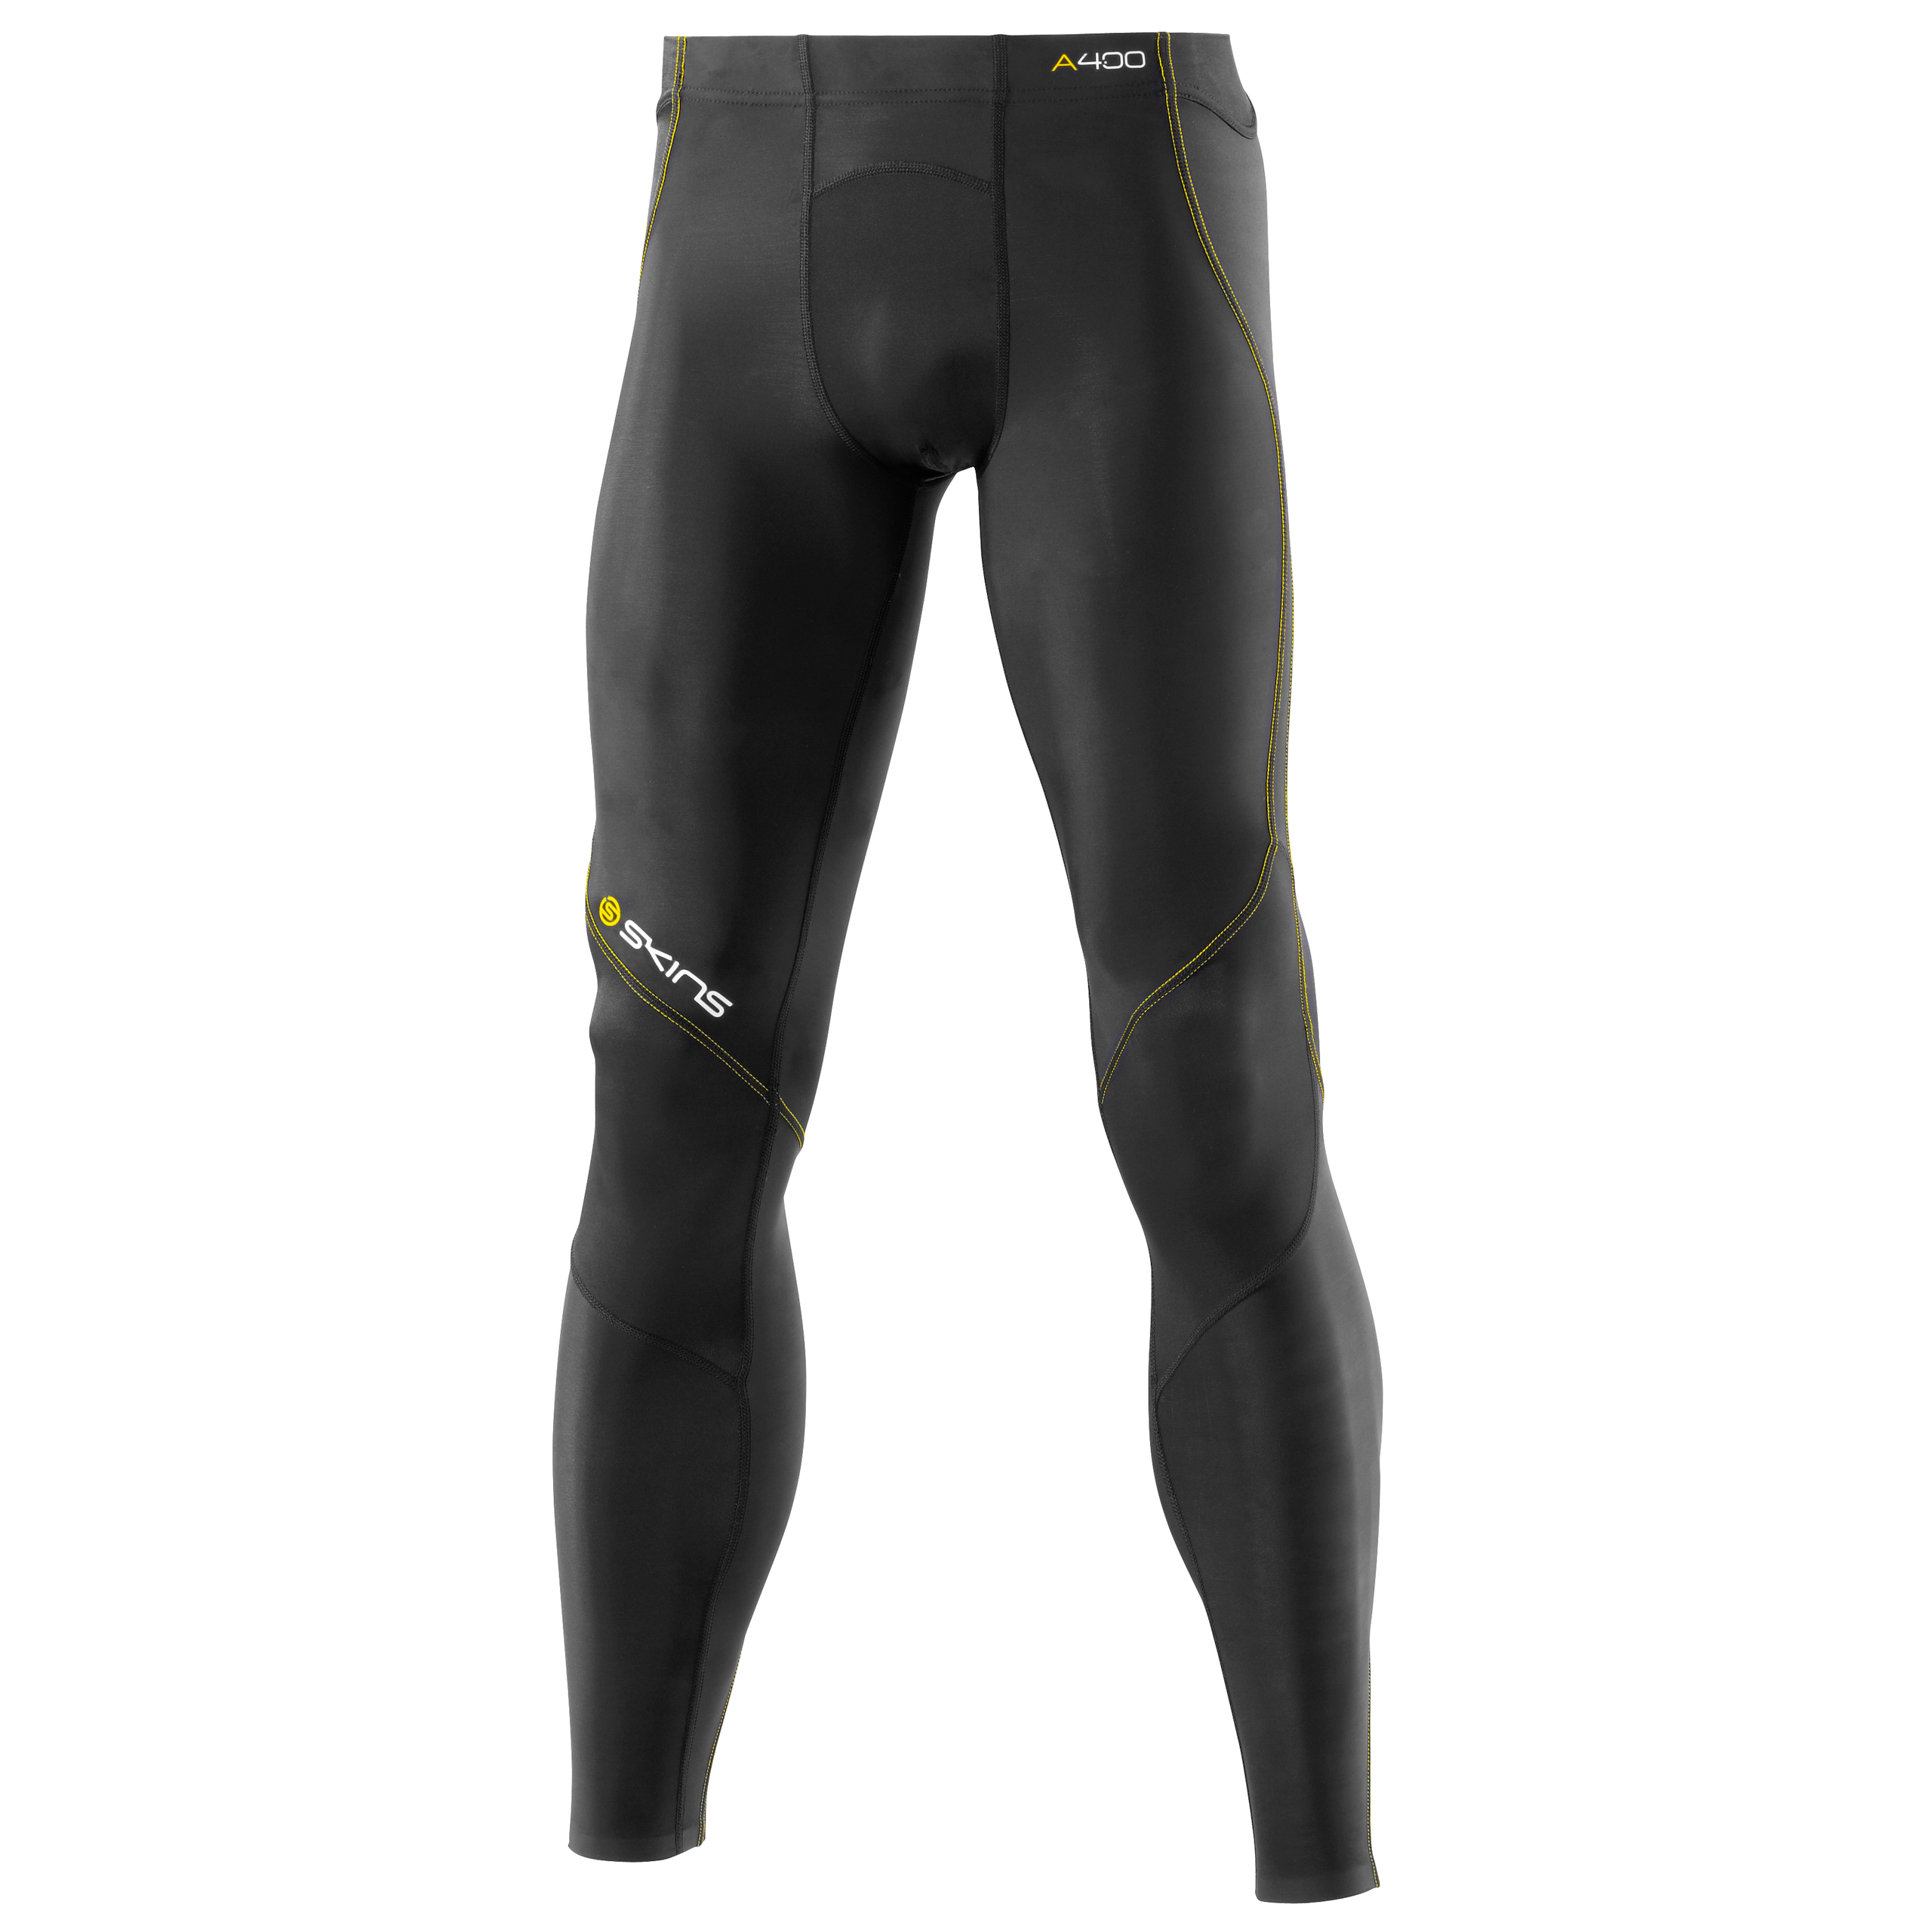 Skins A400 Active Long Tights - Black/Yellow